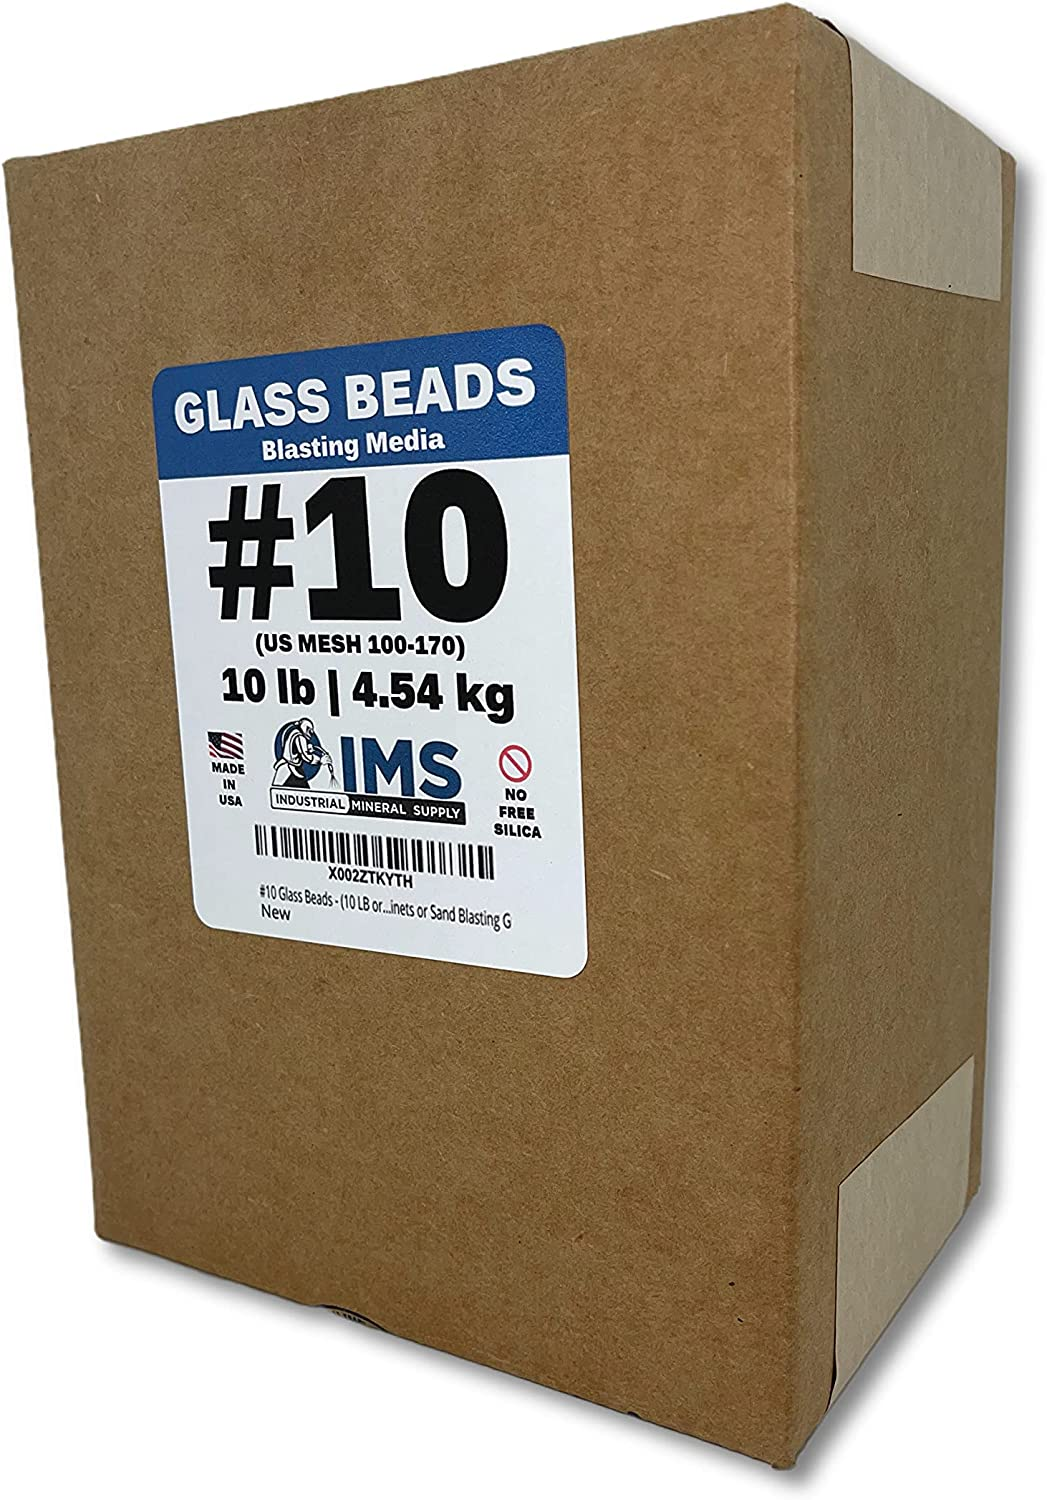 #10 Glass Beads - 10 LBS Blasting or 4.54 Abrasive Media Colorado Springs Mall kg Large discharge sale